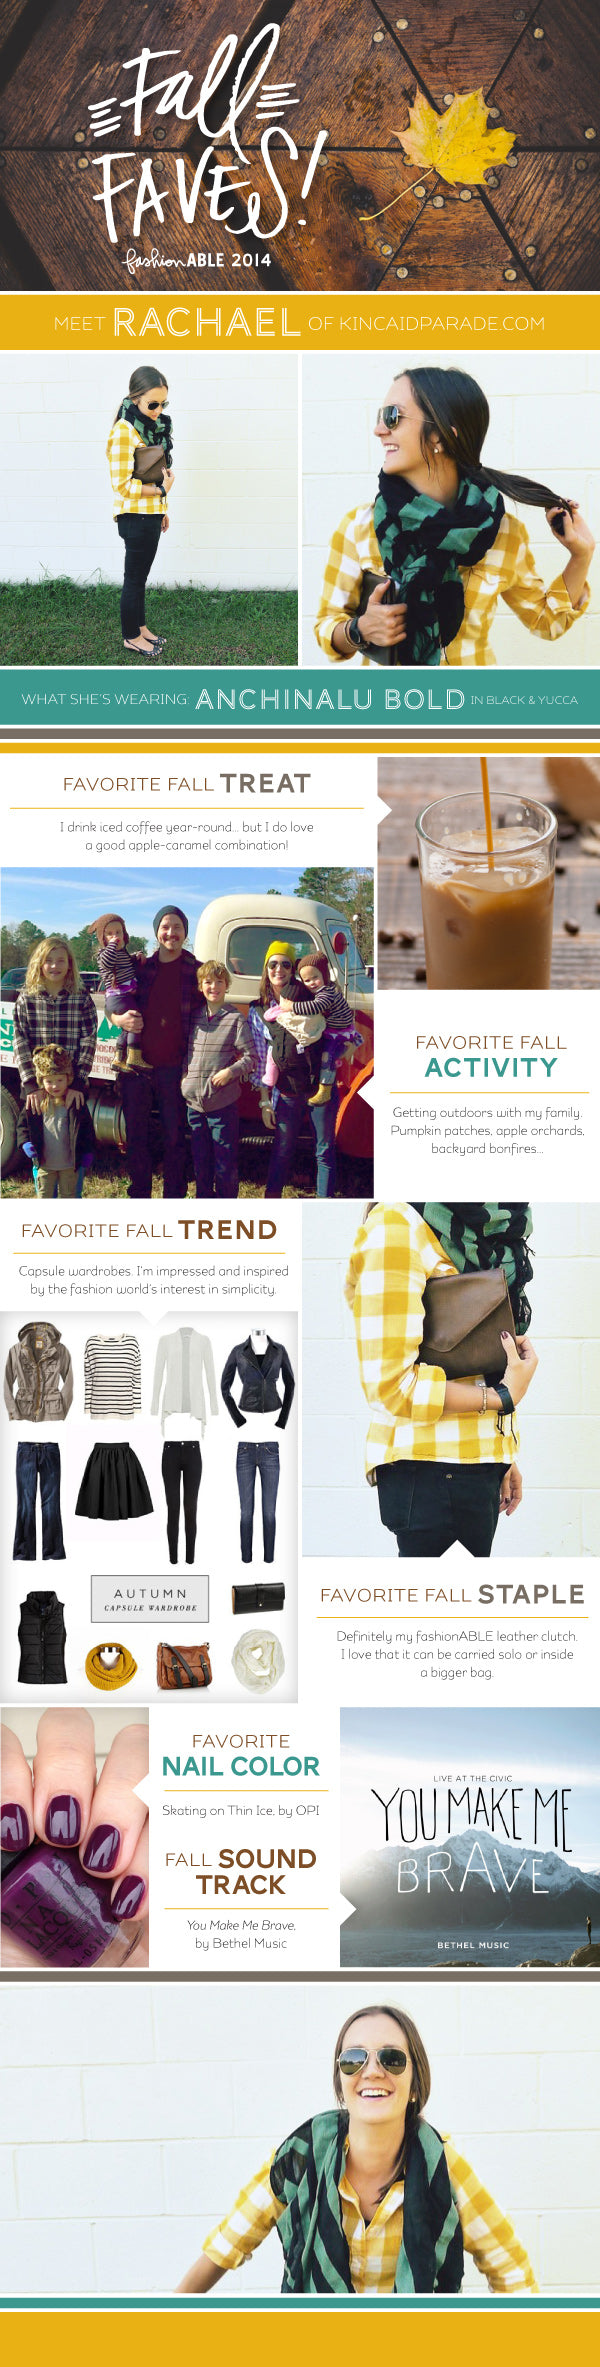 fashionABLE Fall Faves: Rachael | livefashionABLE.com